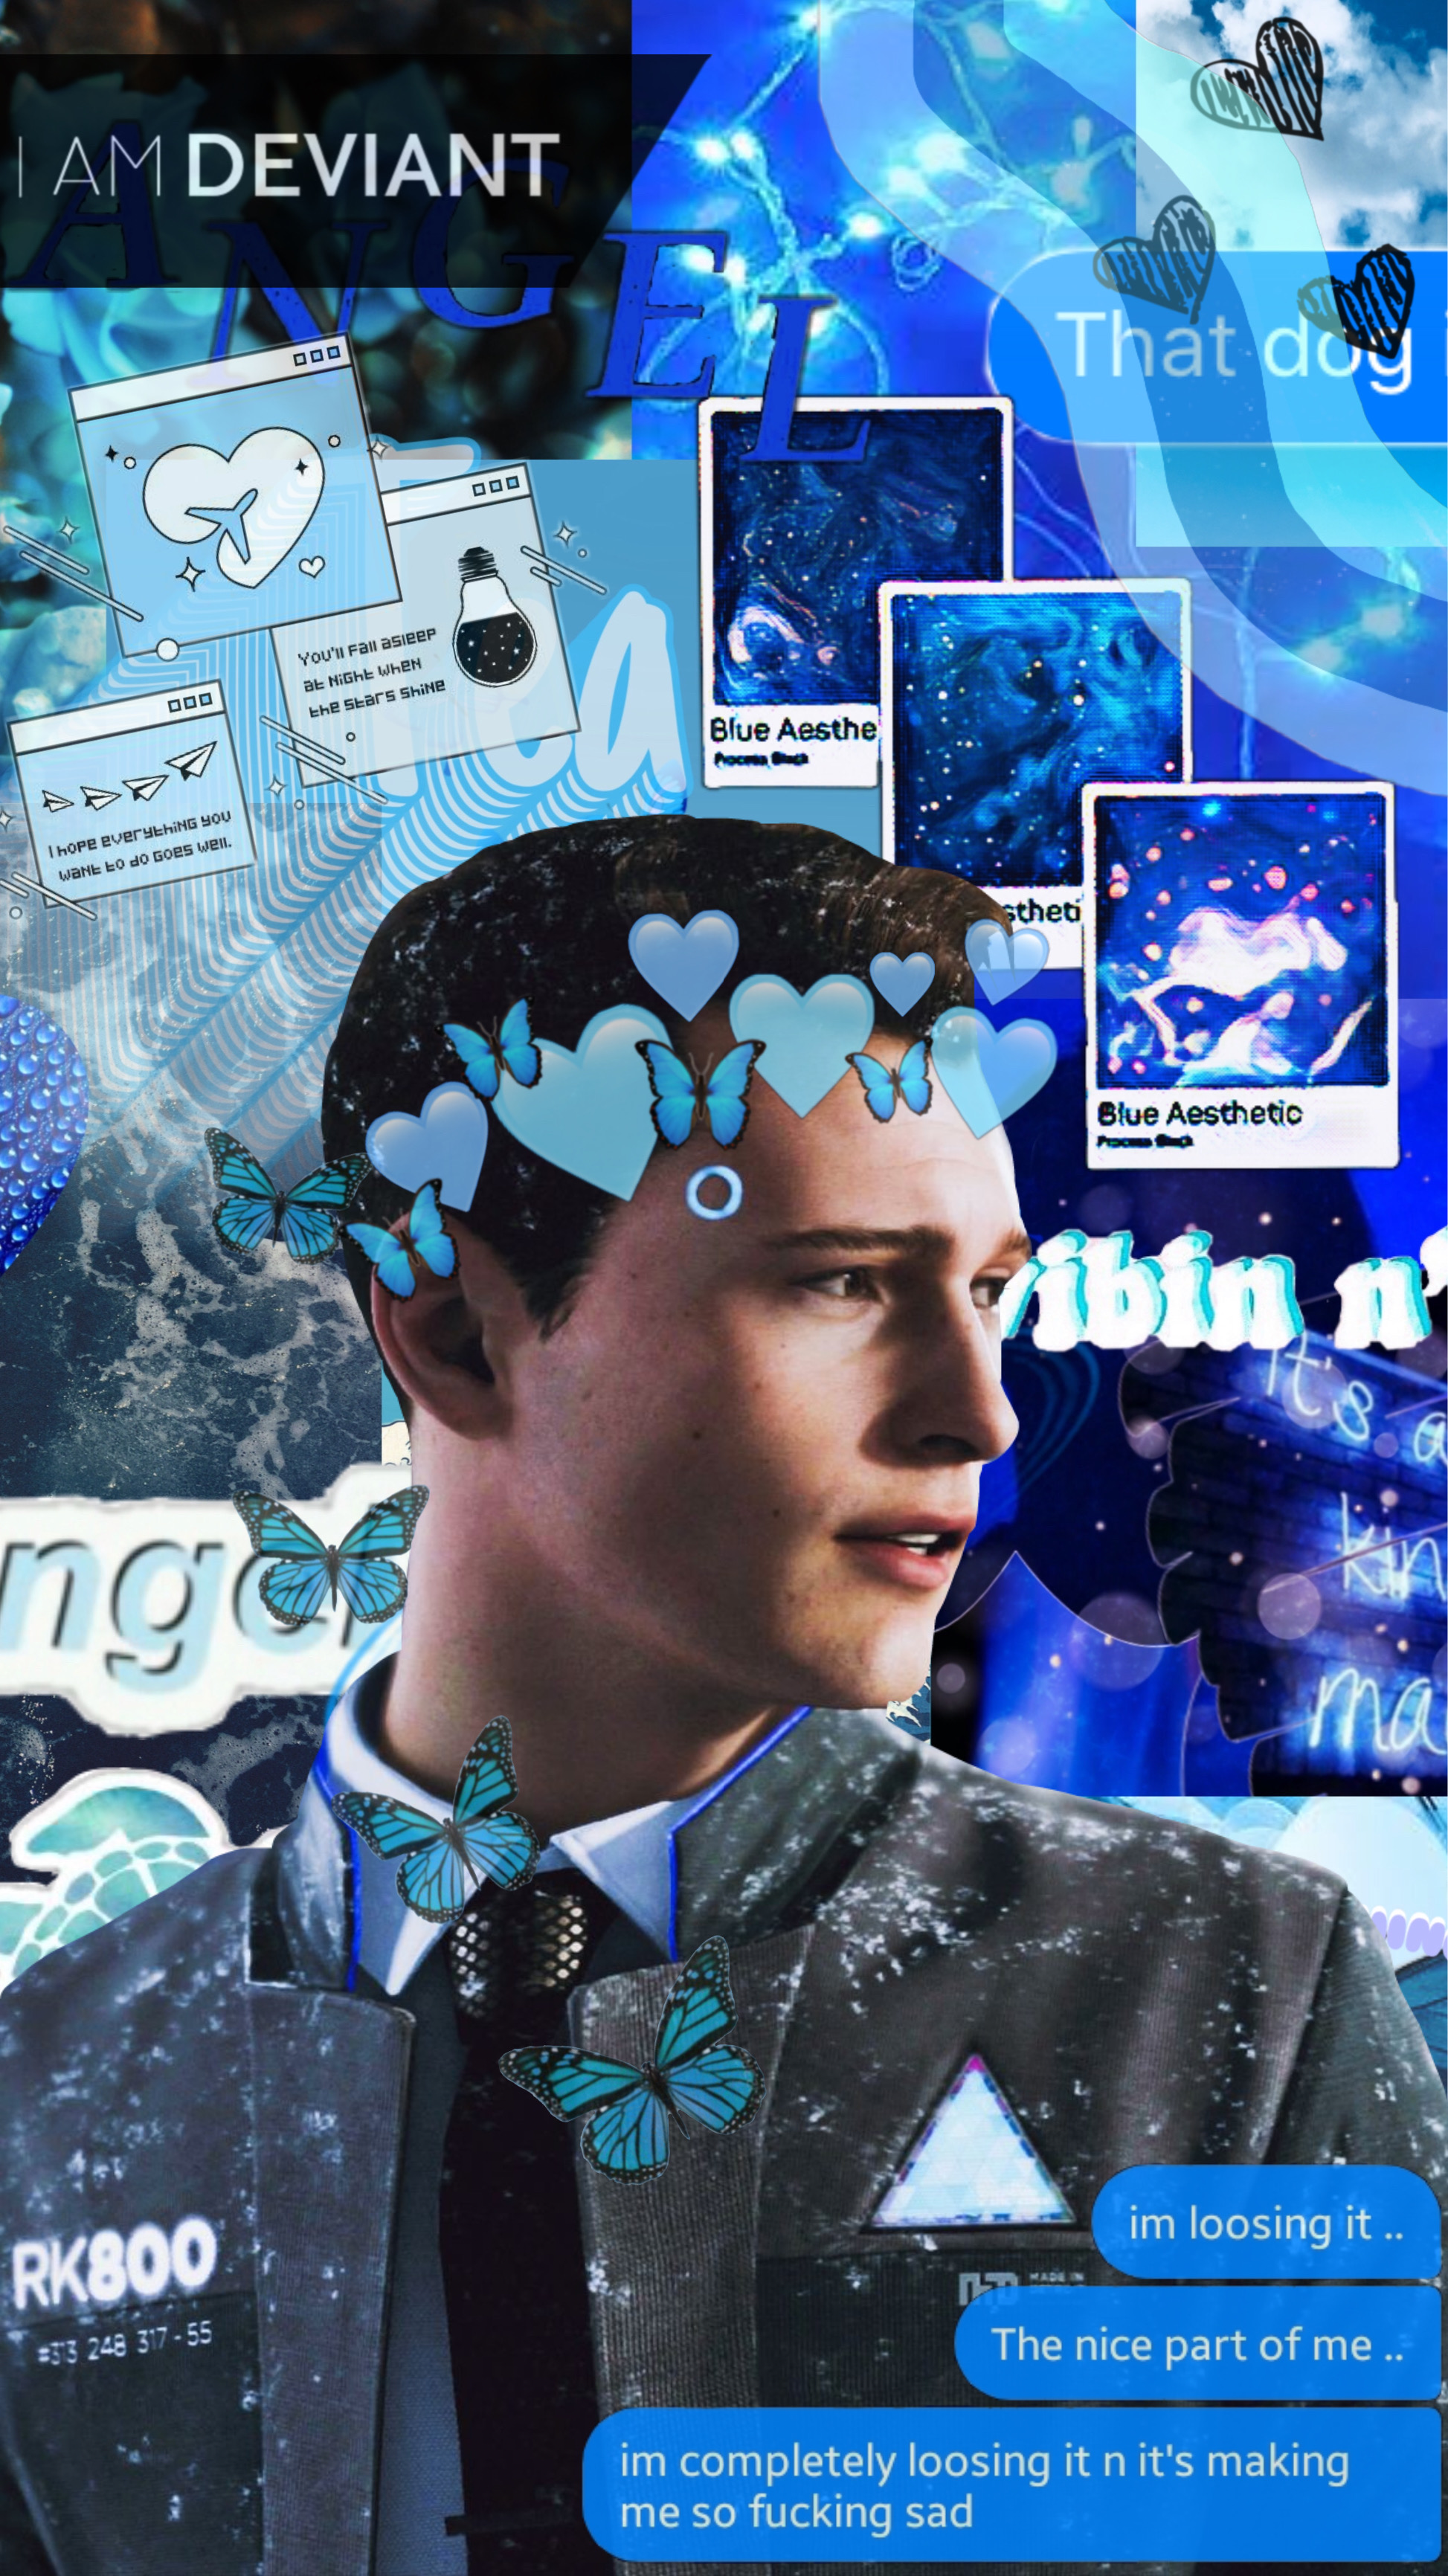 dbh detroitbecomehuman image by 𝐓𝐨𝐛𝐢